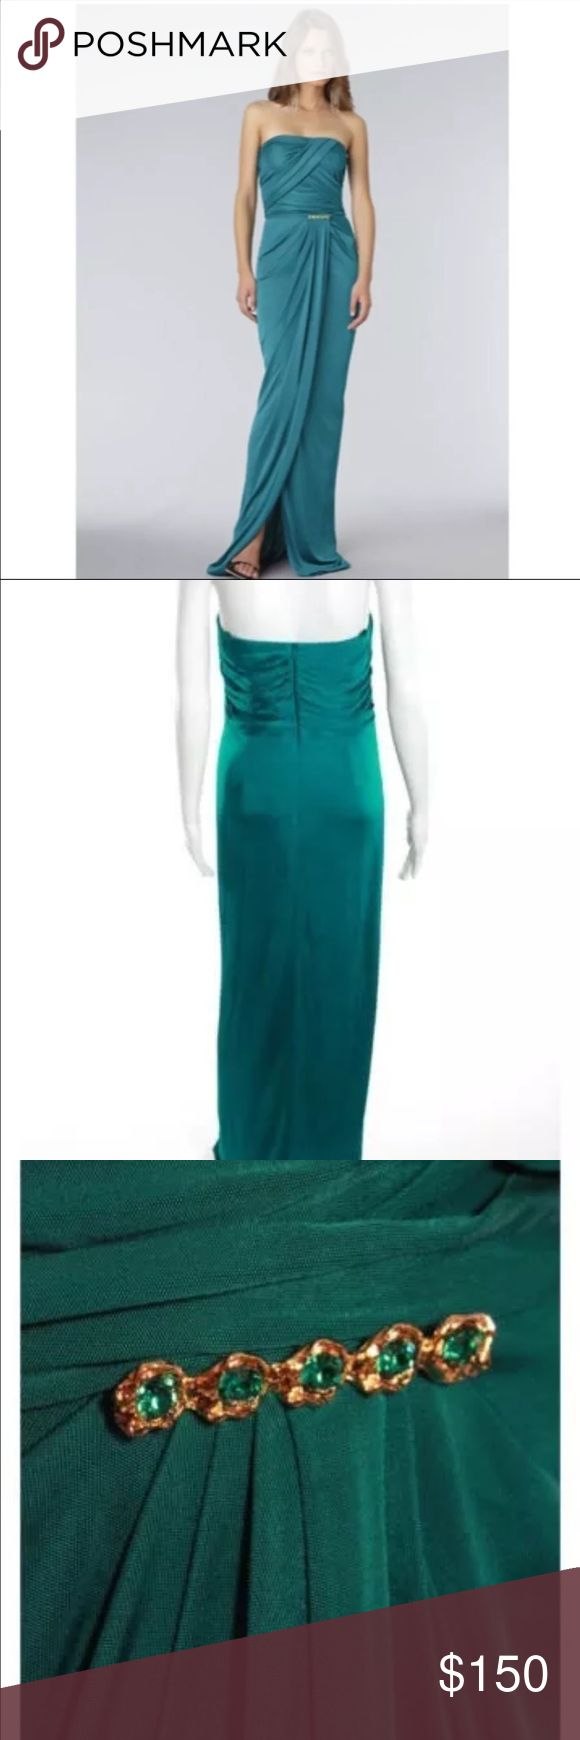 David Meister Strapless Long Dress Green Size 10 Beautiful dress! Never worn! New with tags!! David Meister Dresses Maxi